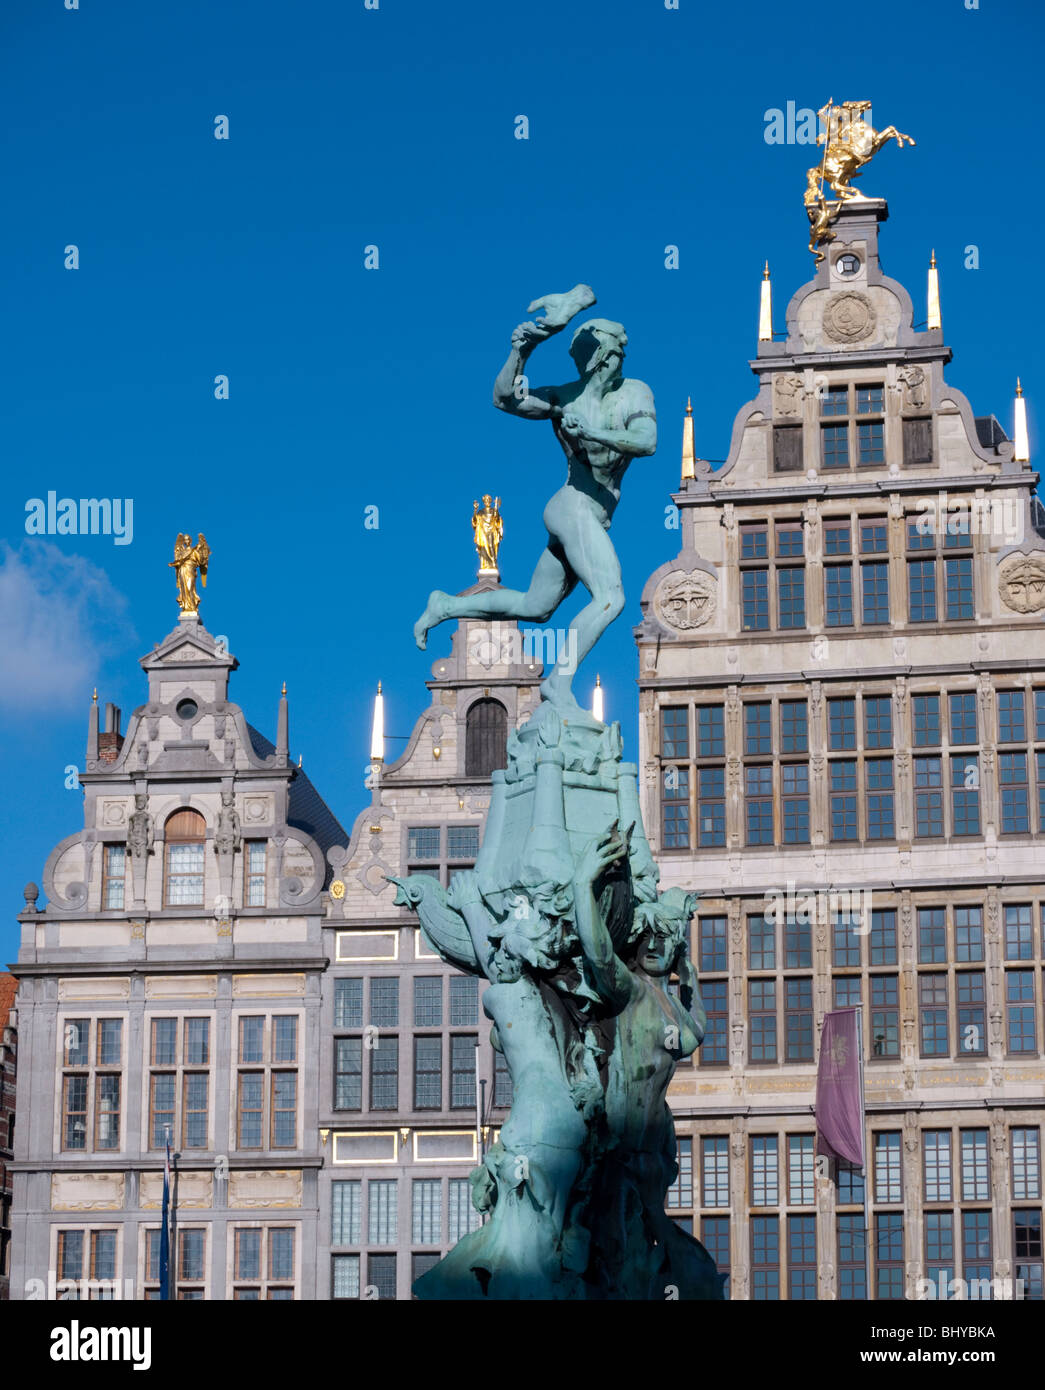 Fountain and historic buildings in Grote Markt square in Antwerp Belgium Stock Photo